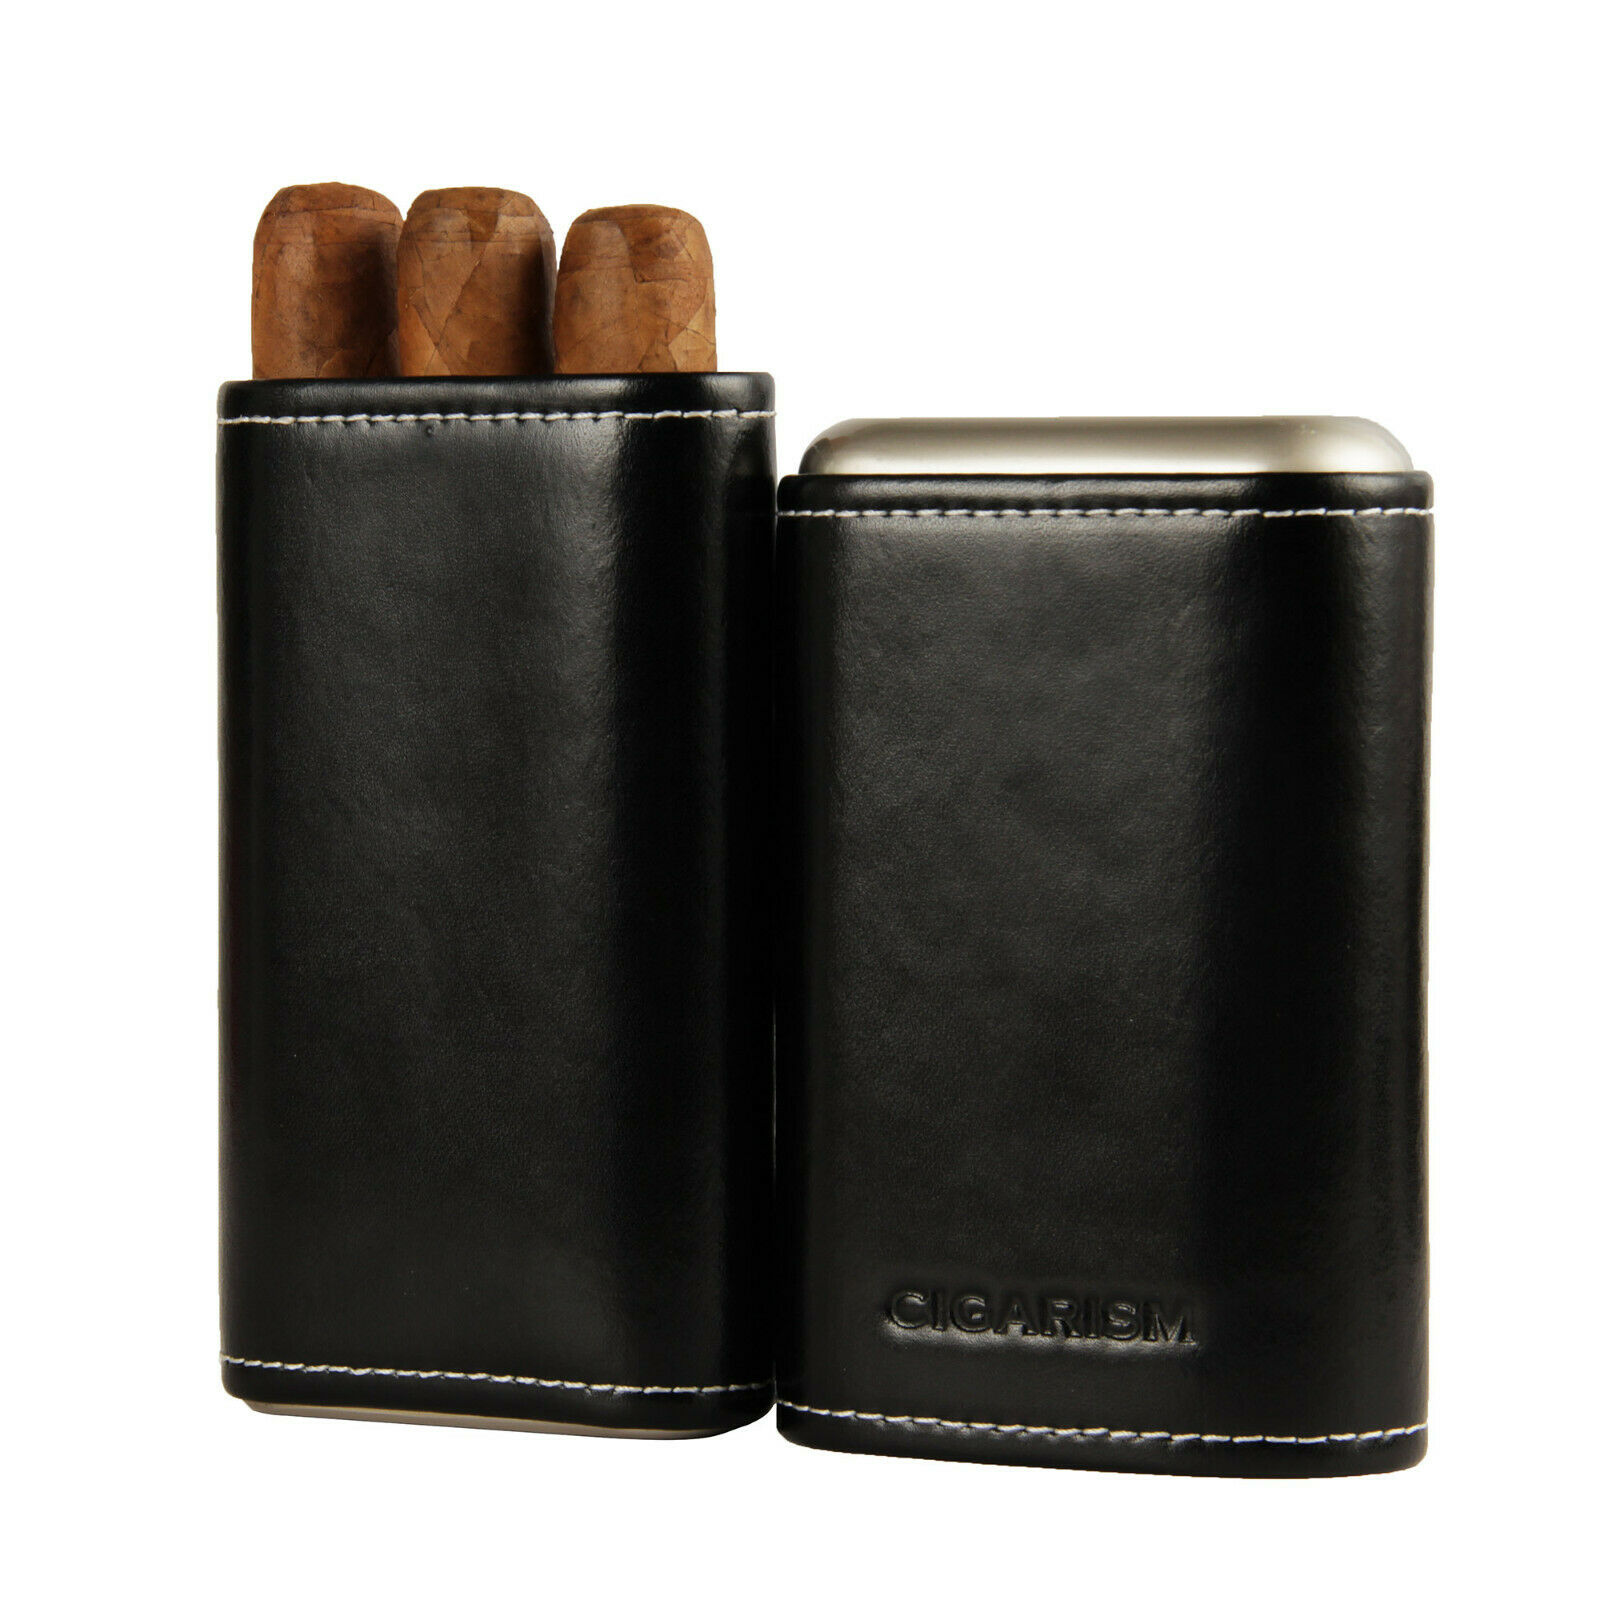 P /& K Products COHIBA Brown Leather Holder Two Tube Travel Cigar Case Humidor 2 Tube 6H